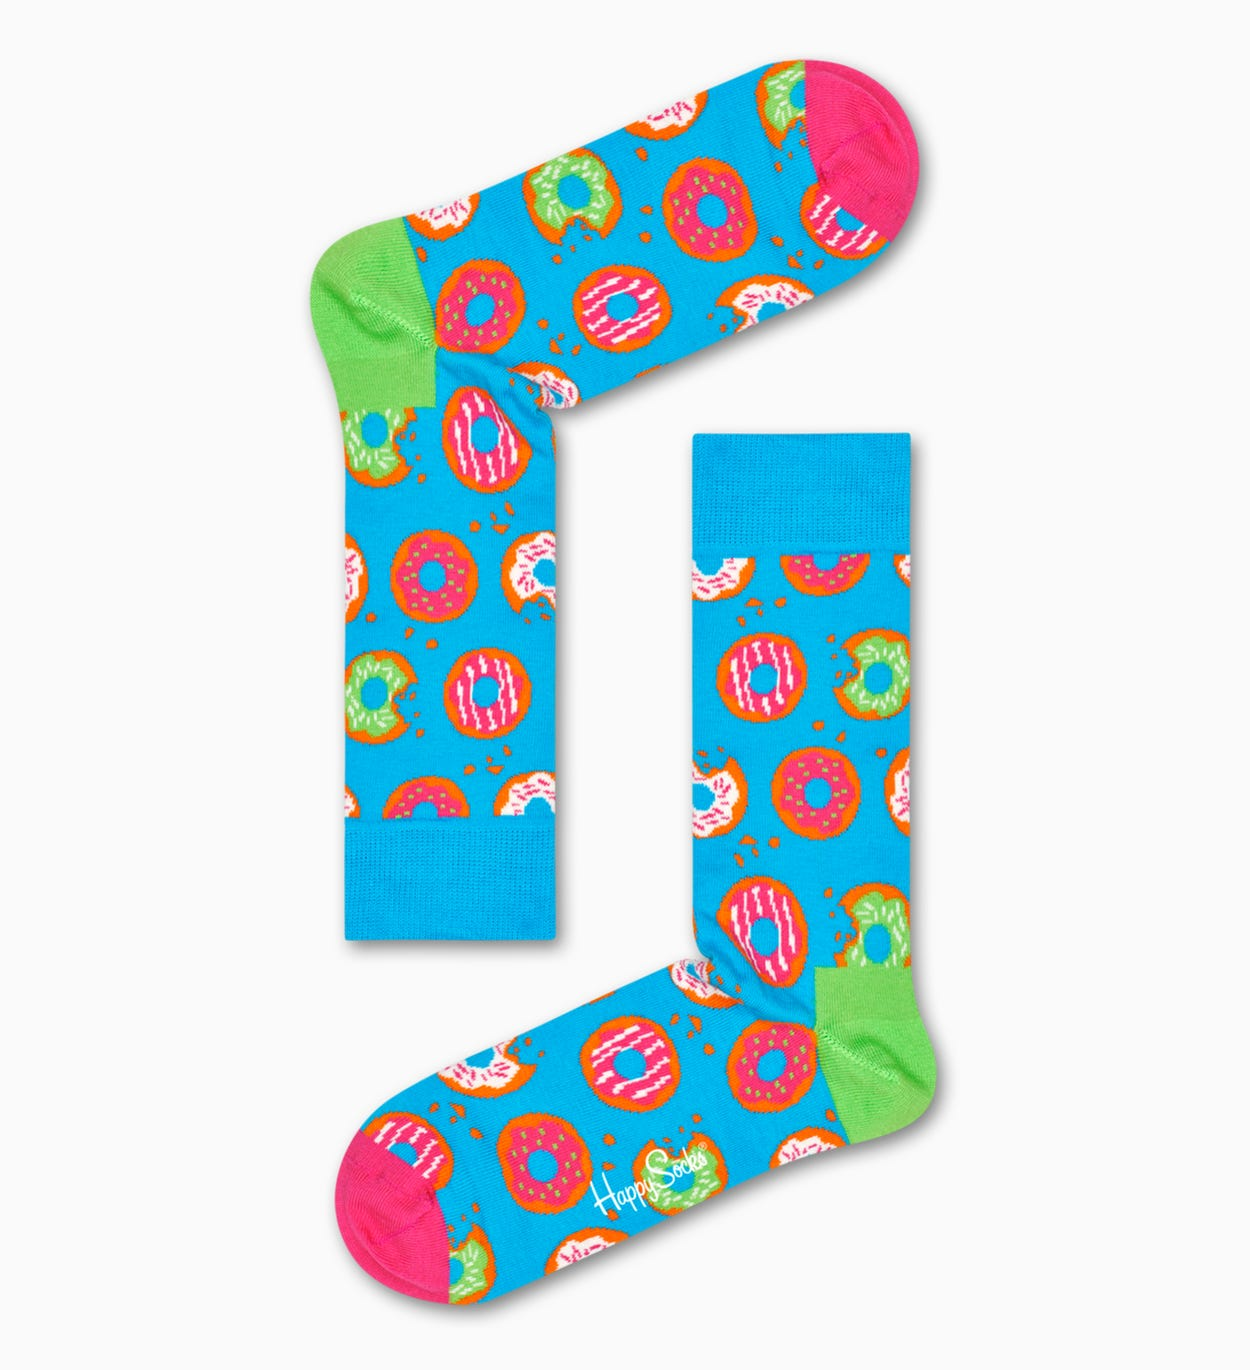 Treat their feet to delicious Donut socks! Featuring a bright, sky blue background with a buffet of colorful donuts, these vibrant socks look good enoug…